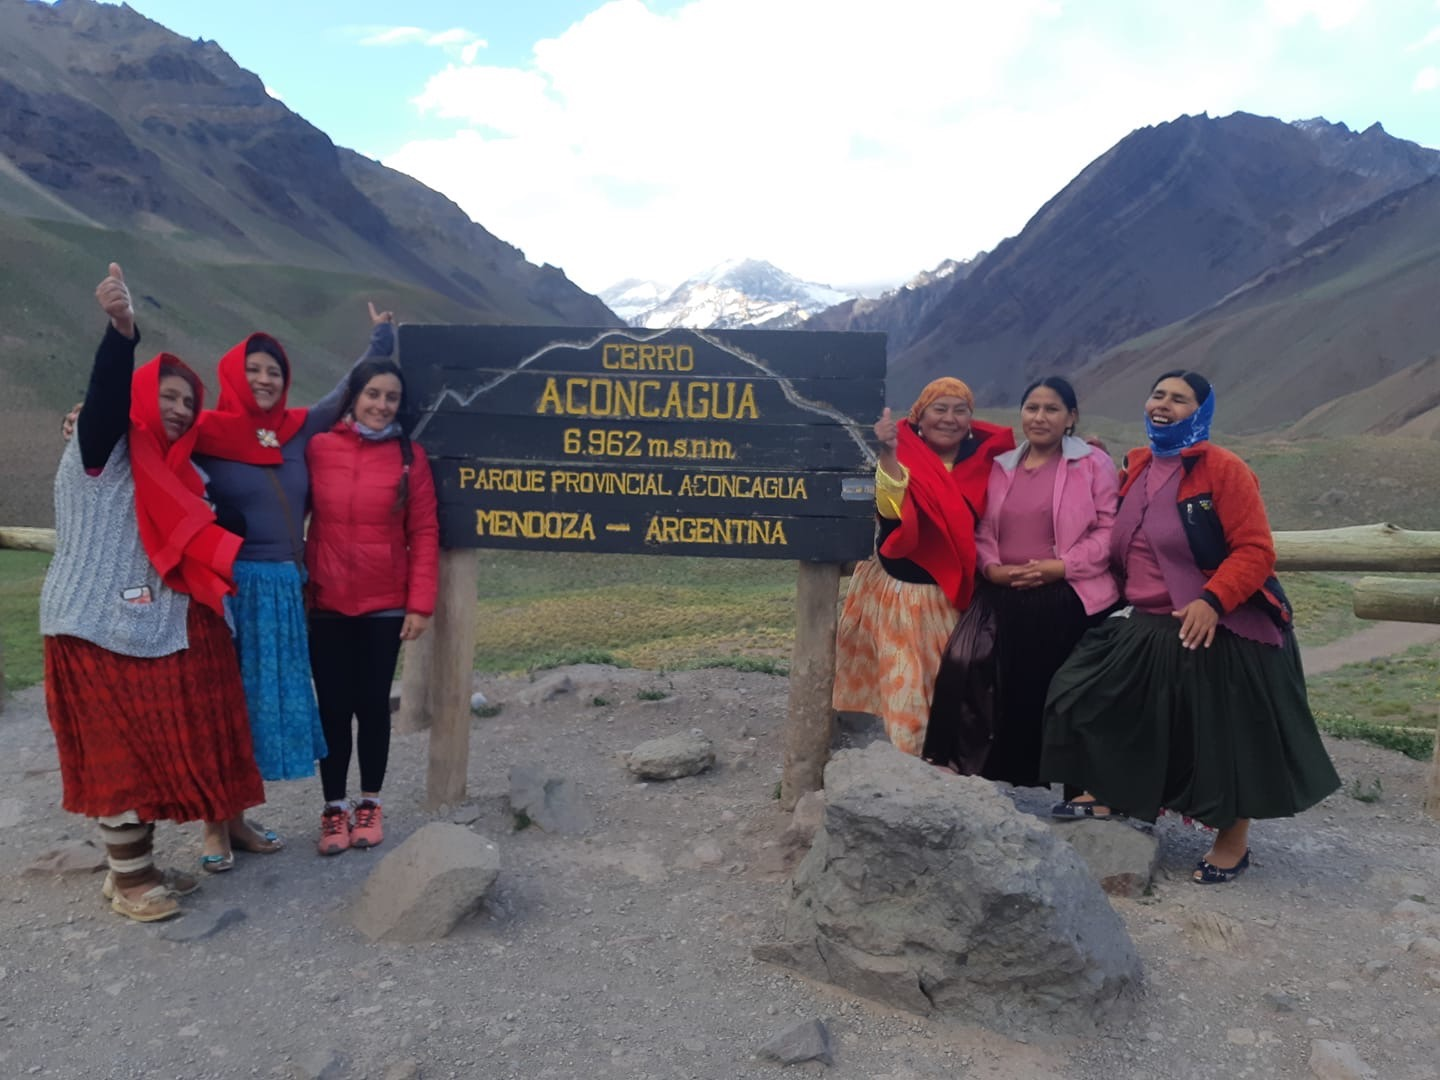 At the entrance to the Aconcagua Park. Dora Magueno. AnaLia Gonzales. Pamela. Lidia Huayllas. Elena Quispe. Cecilia Llusco. [Photo] Courtesy of Ana Lia Gonzales